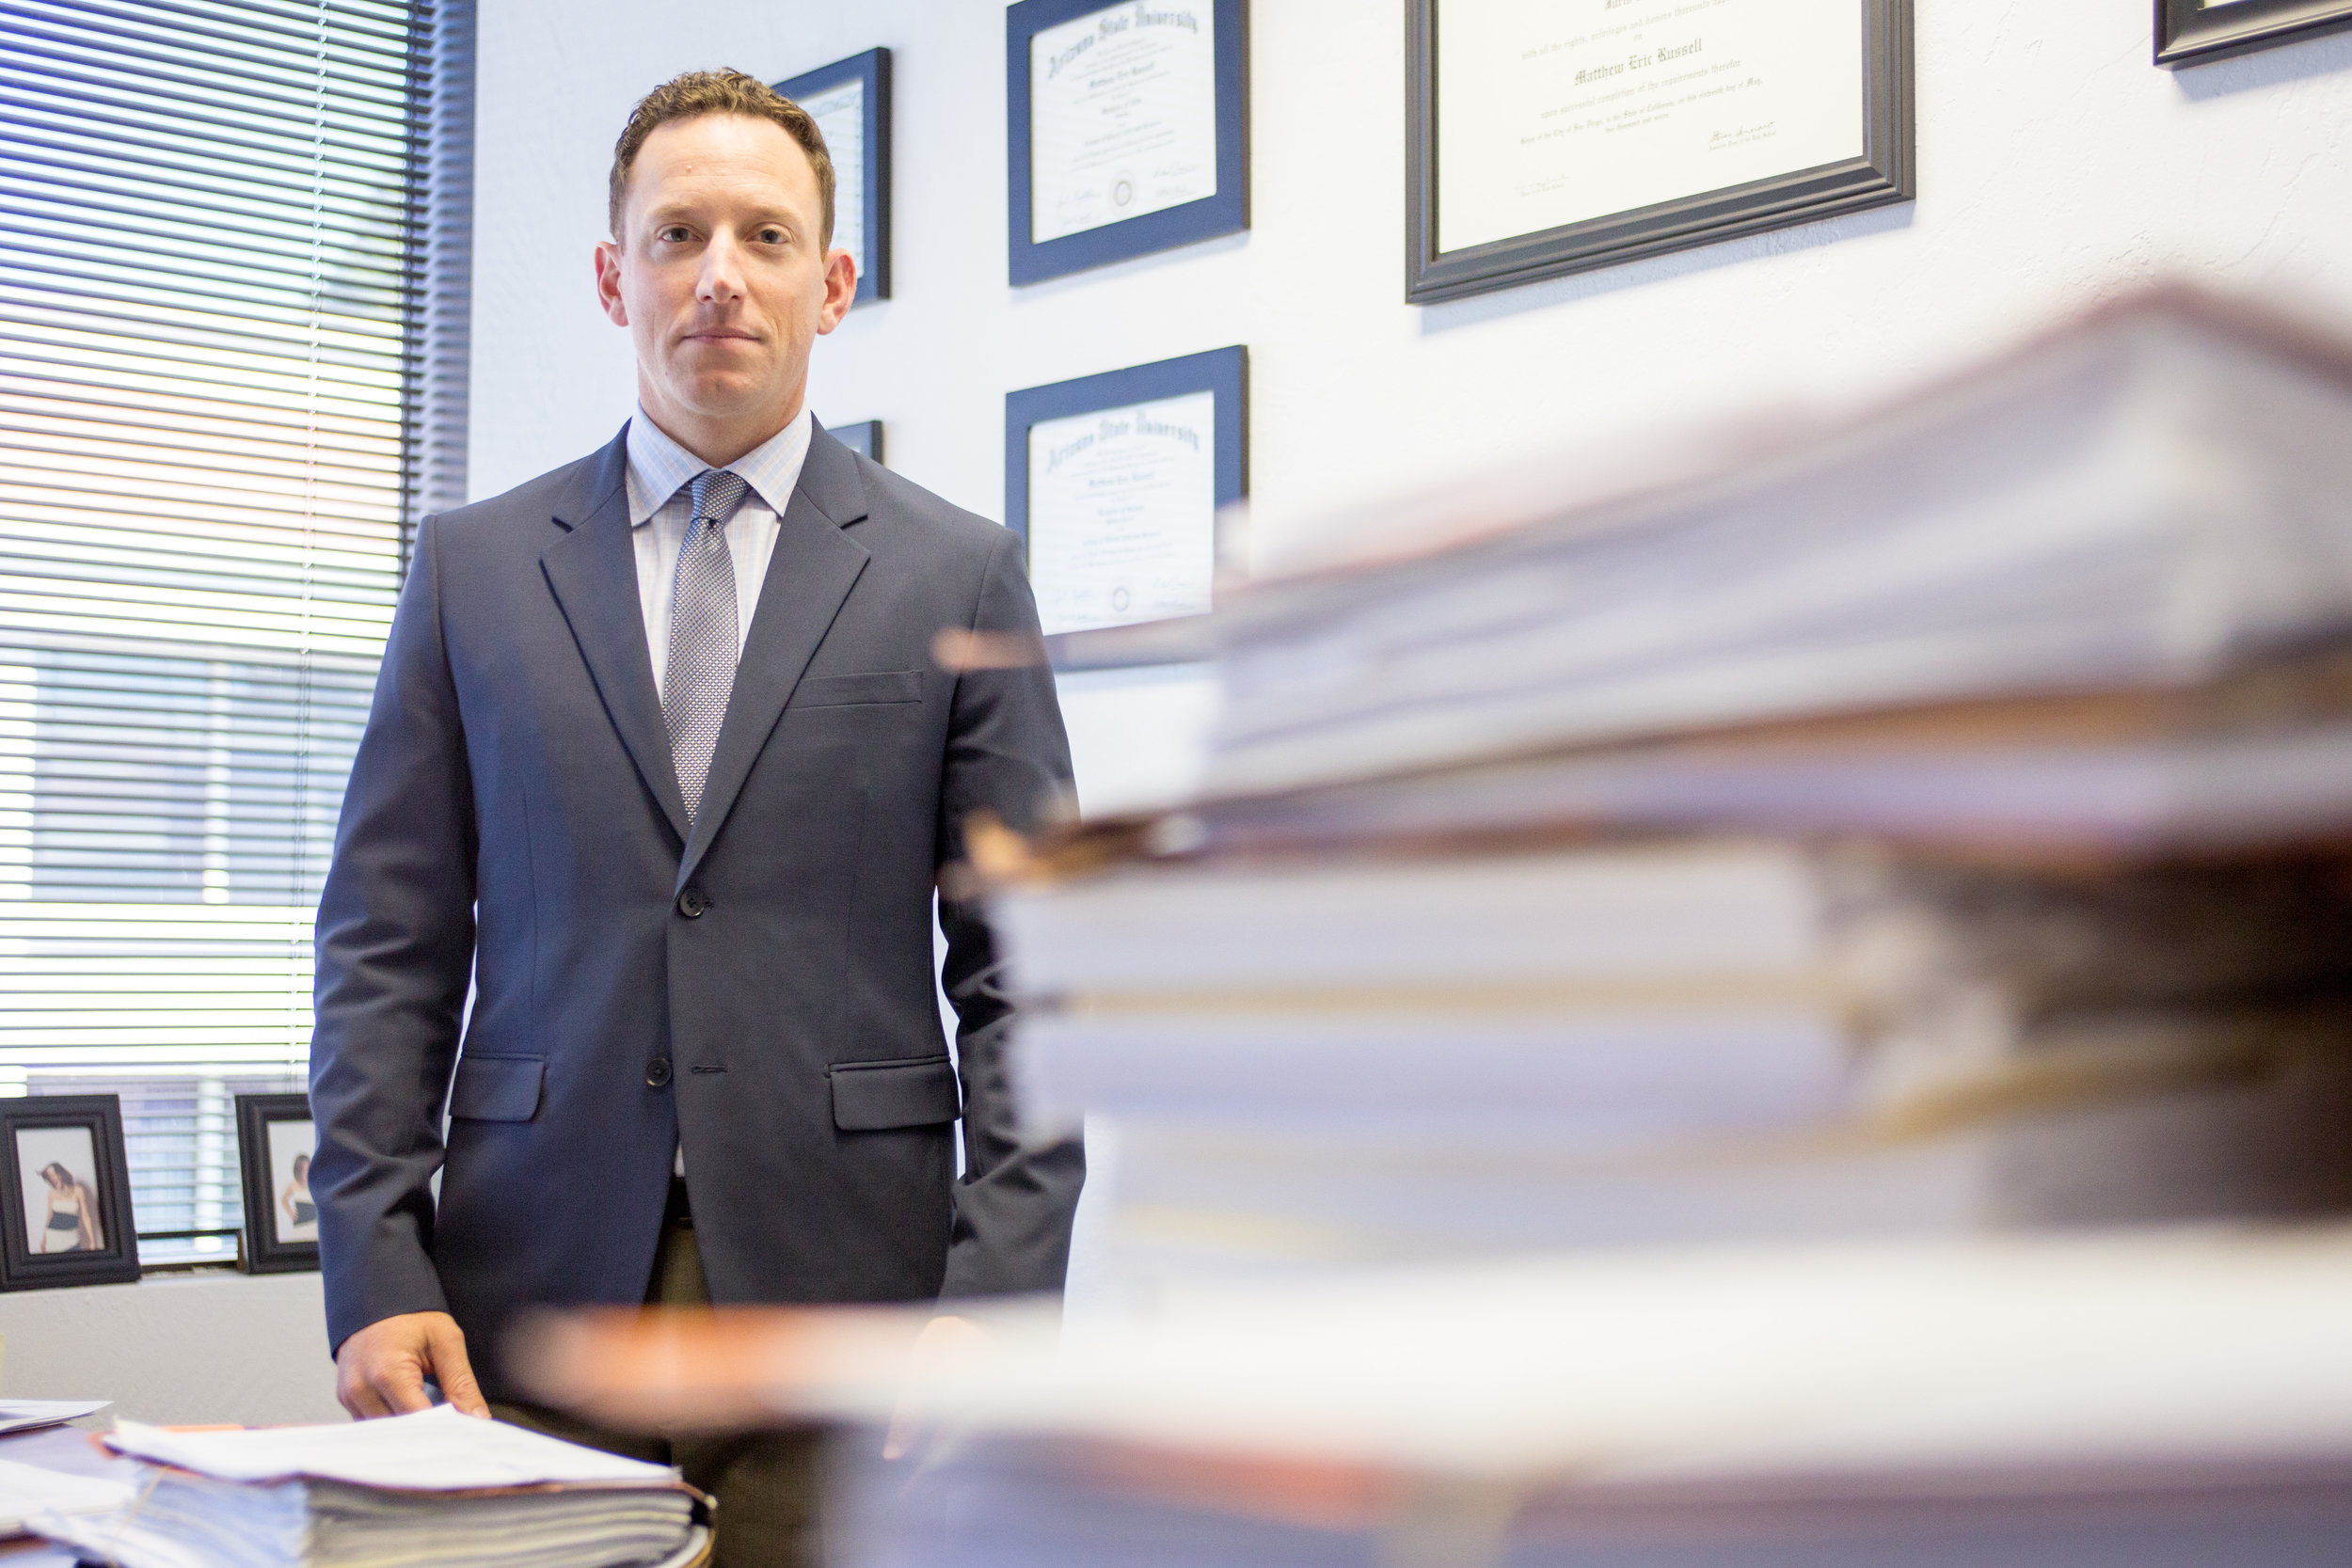 Workers' Comp Lawyer can help in San Diego.